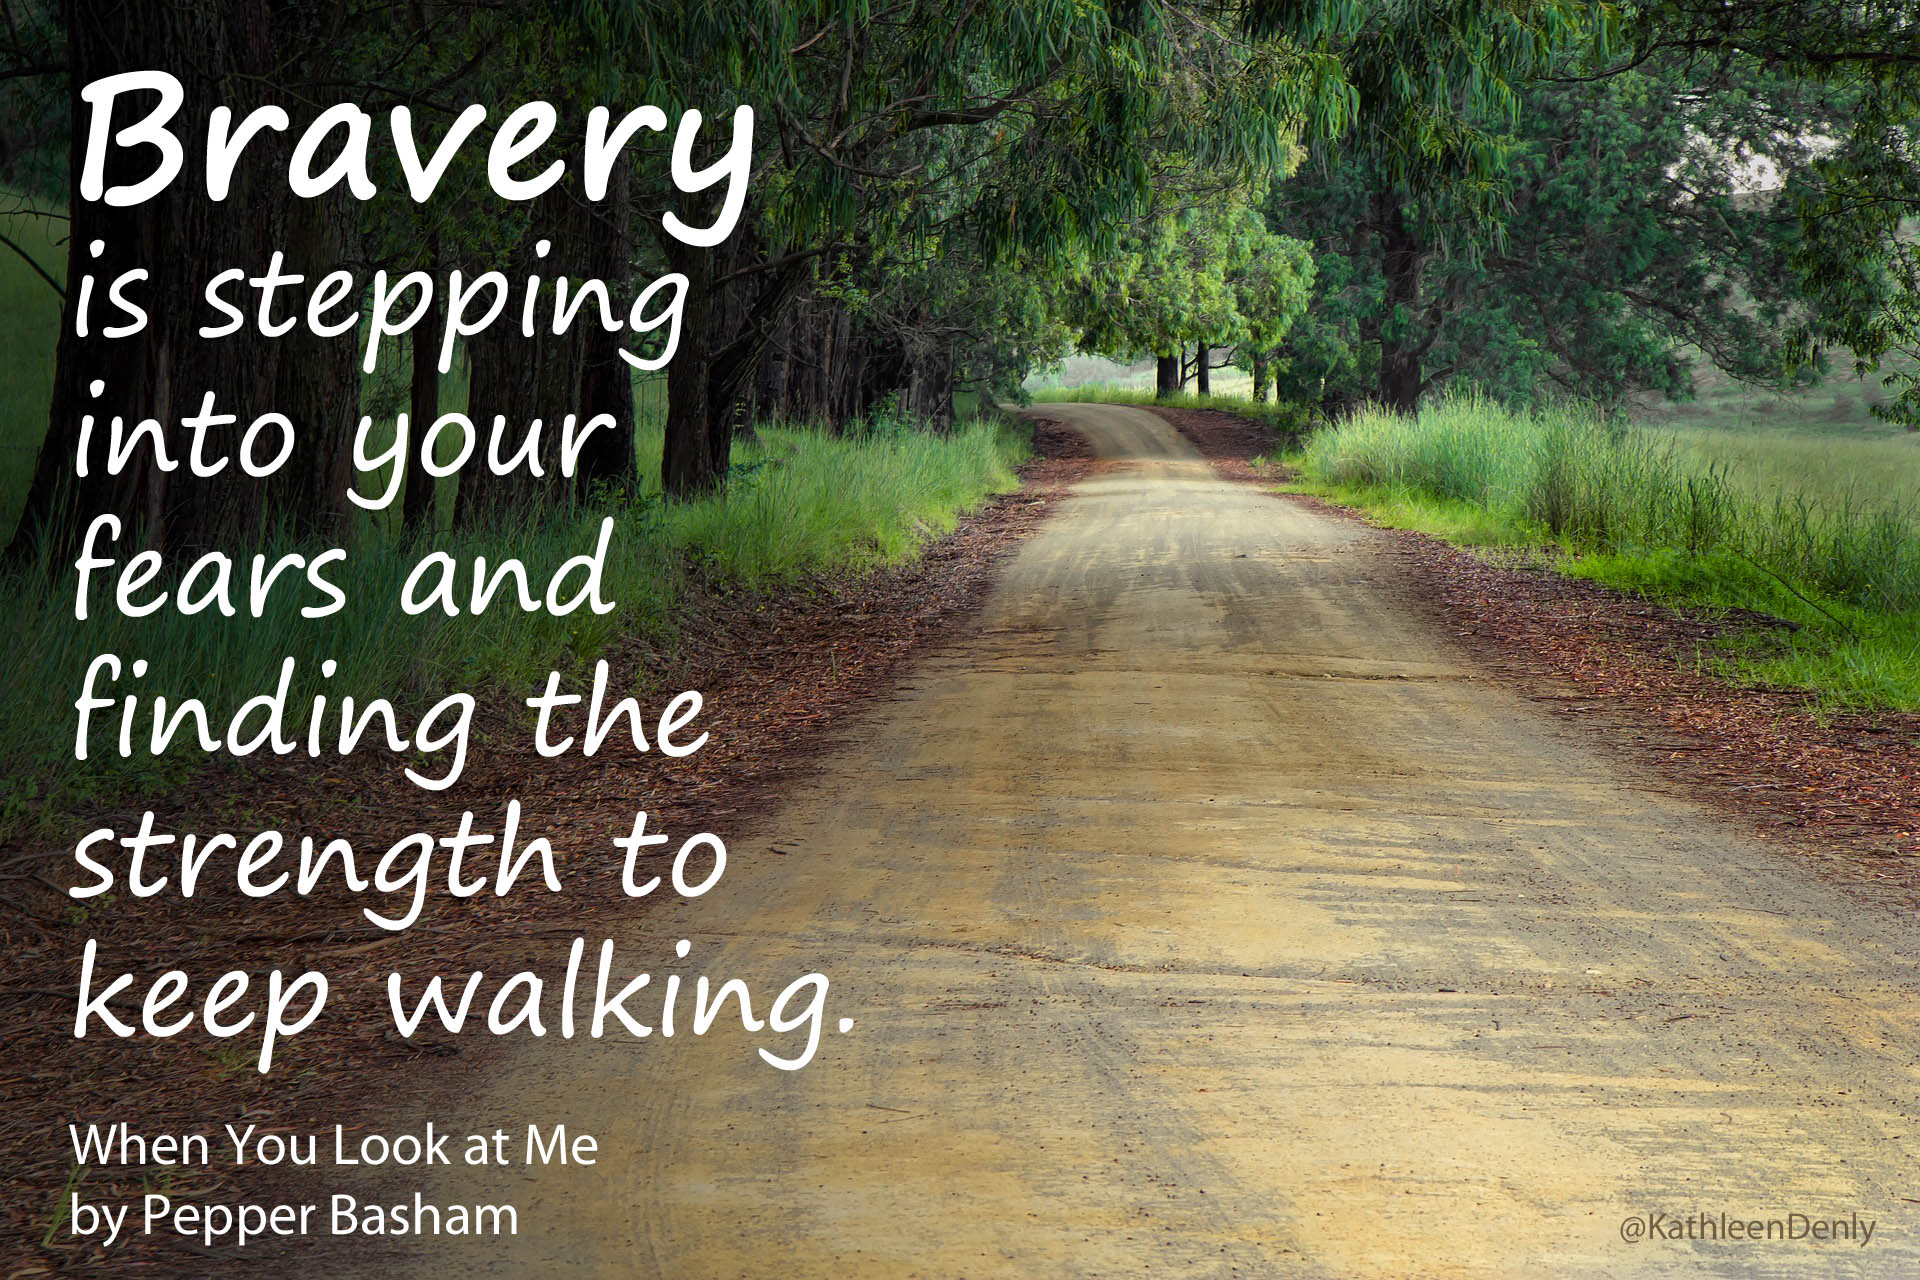 Book Quote - When You Look at Me - Bravery